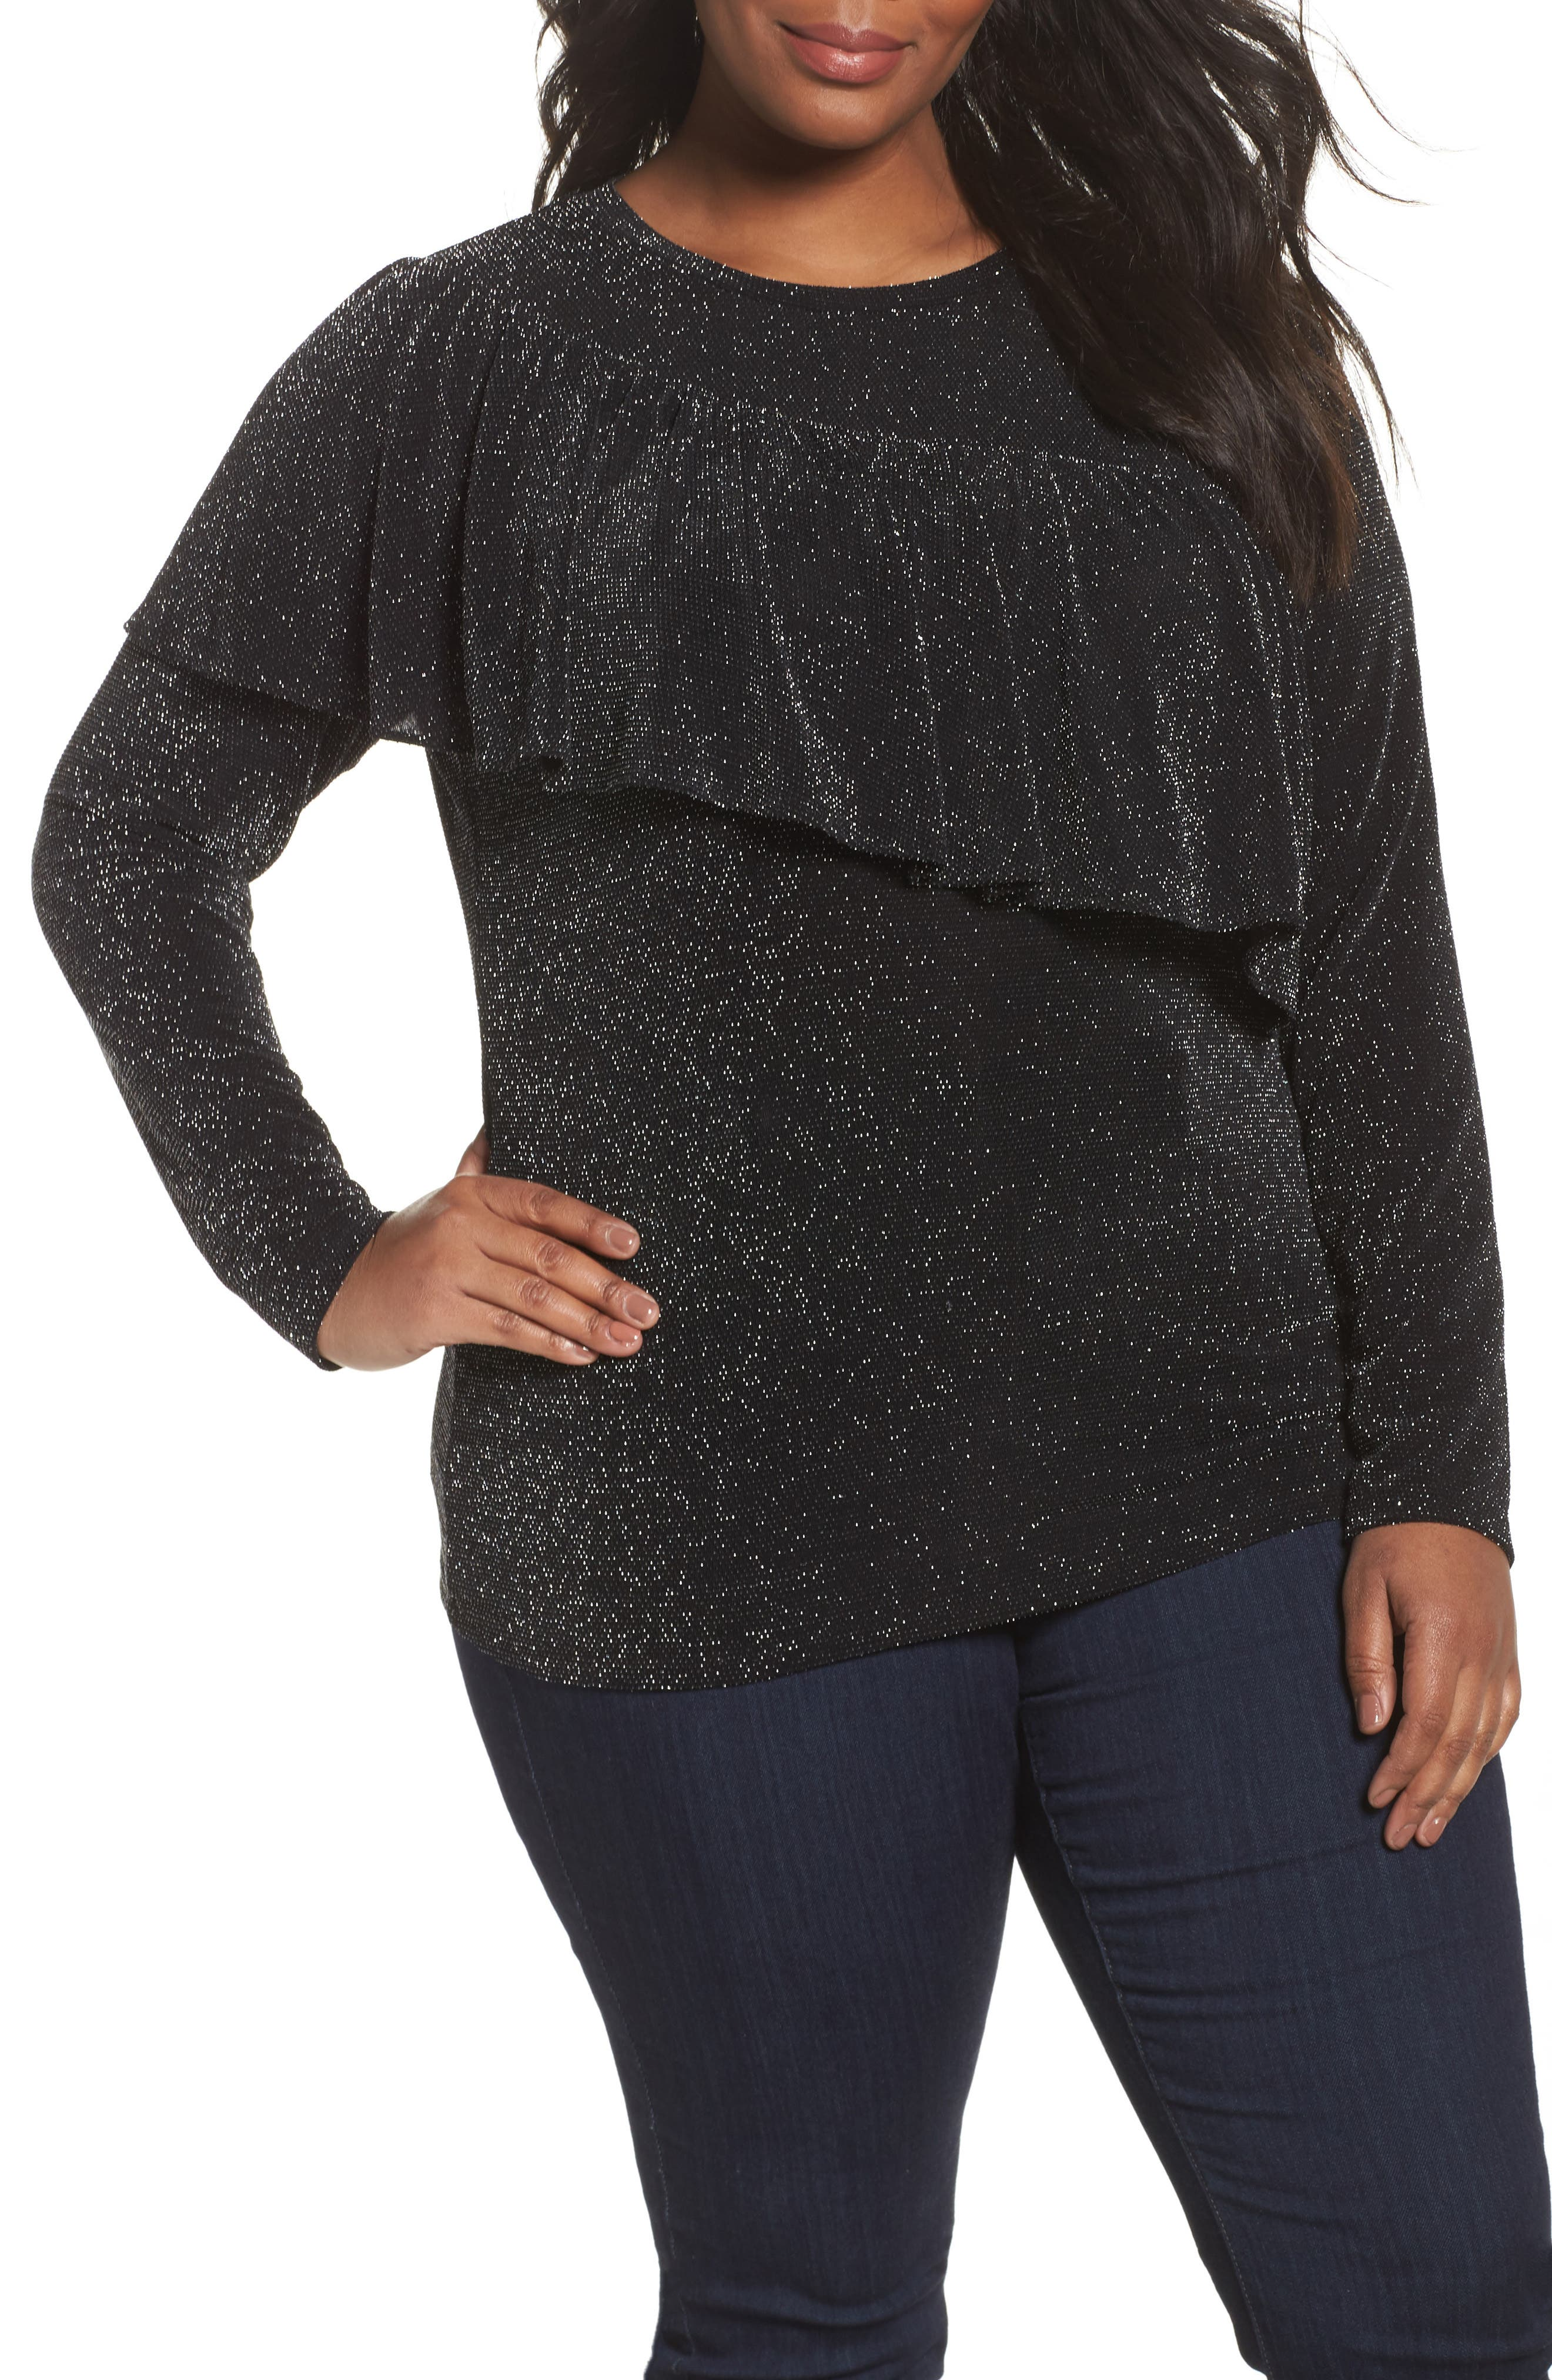 Ruffled Metallic Top,                         Main,                         color, Black